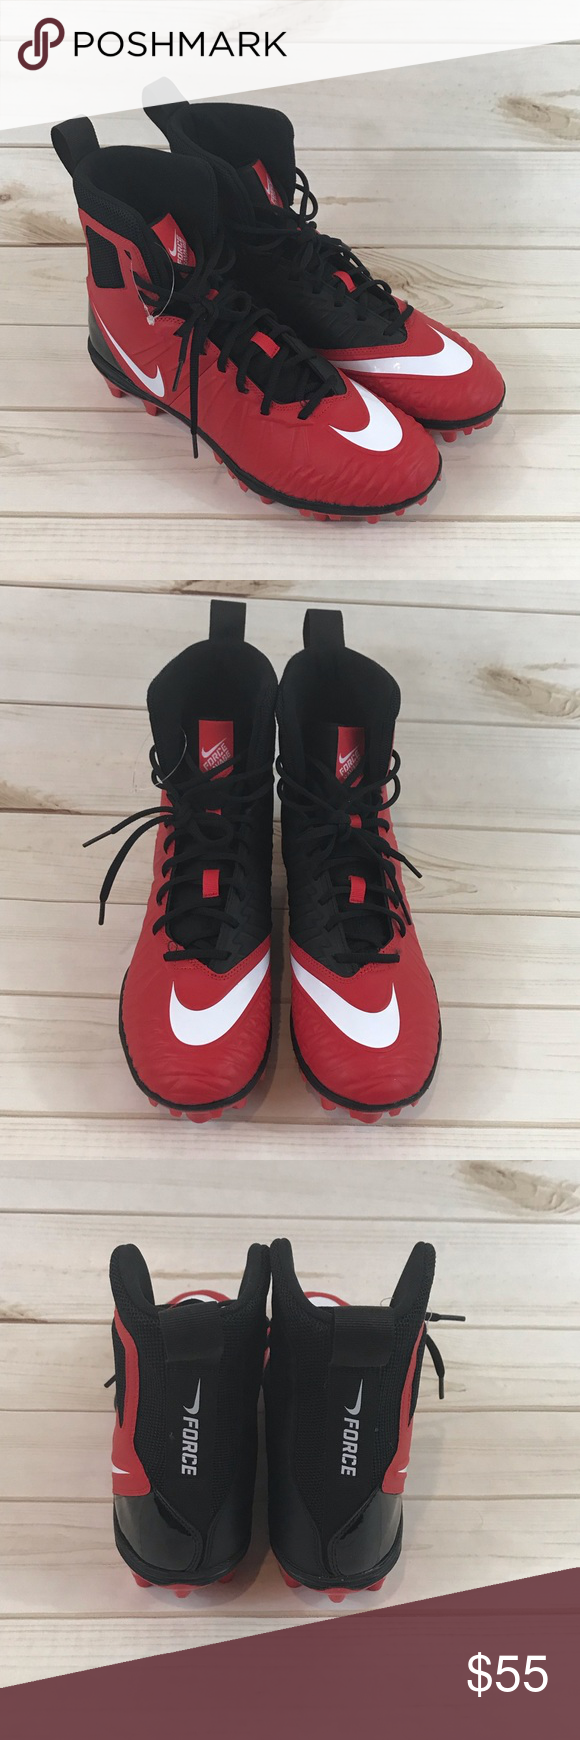 a88816b9469 Nike Force Savage Varsity Men s Football Cleat Nike Force Savage Varsity  Men s Football Cleat Size 10 Black Red A synthetic upper with high-top  silhouette ...